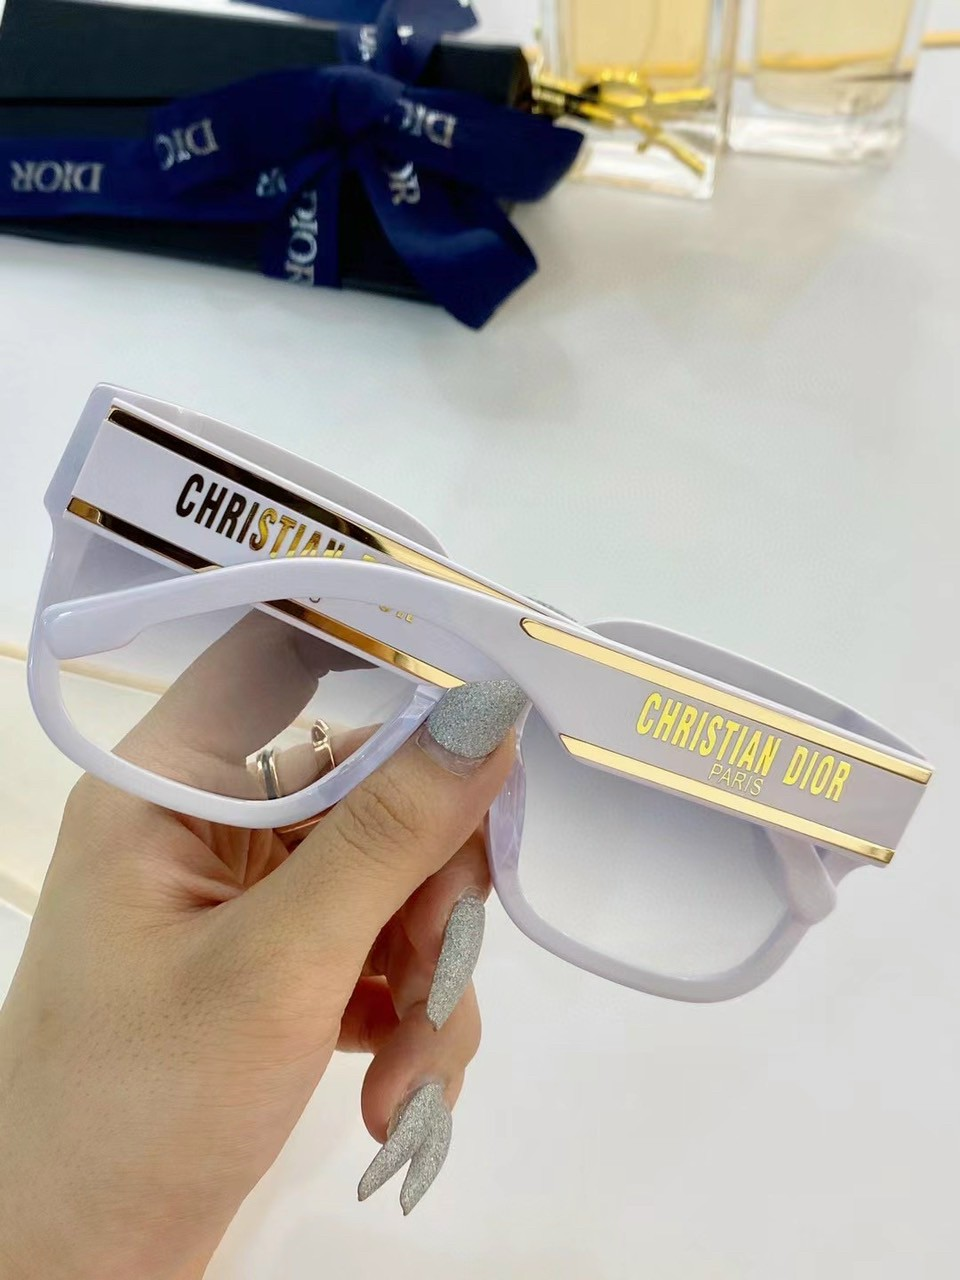 DIOR Christain-M-73039